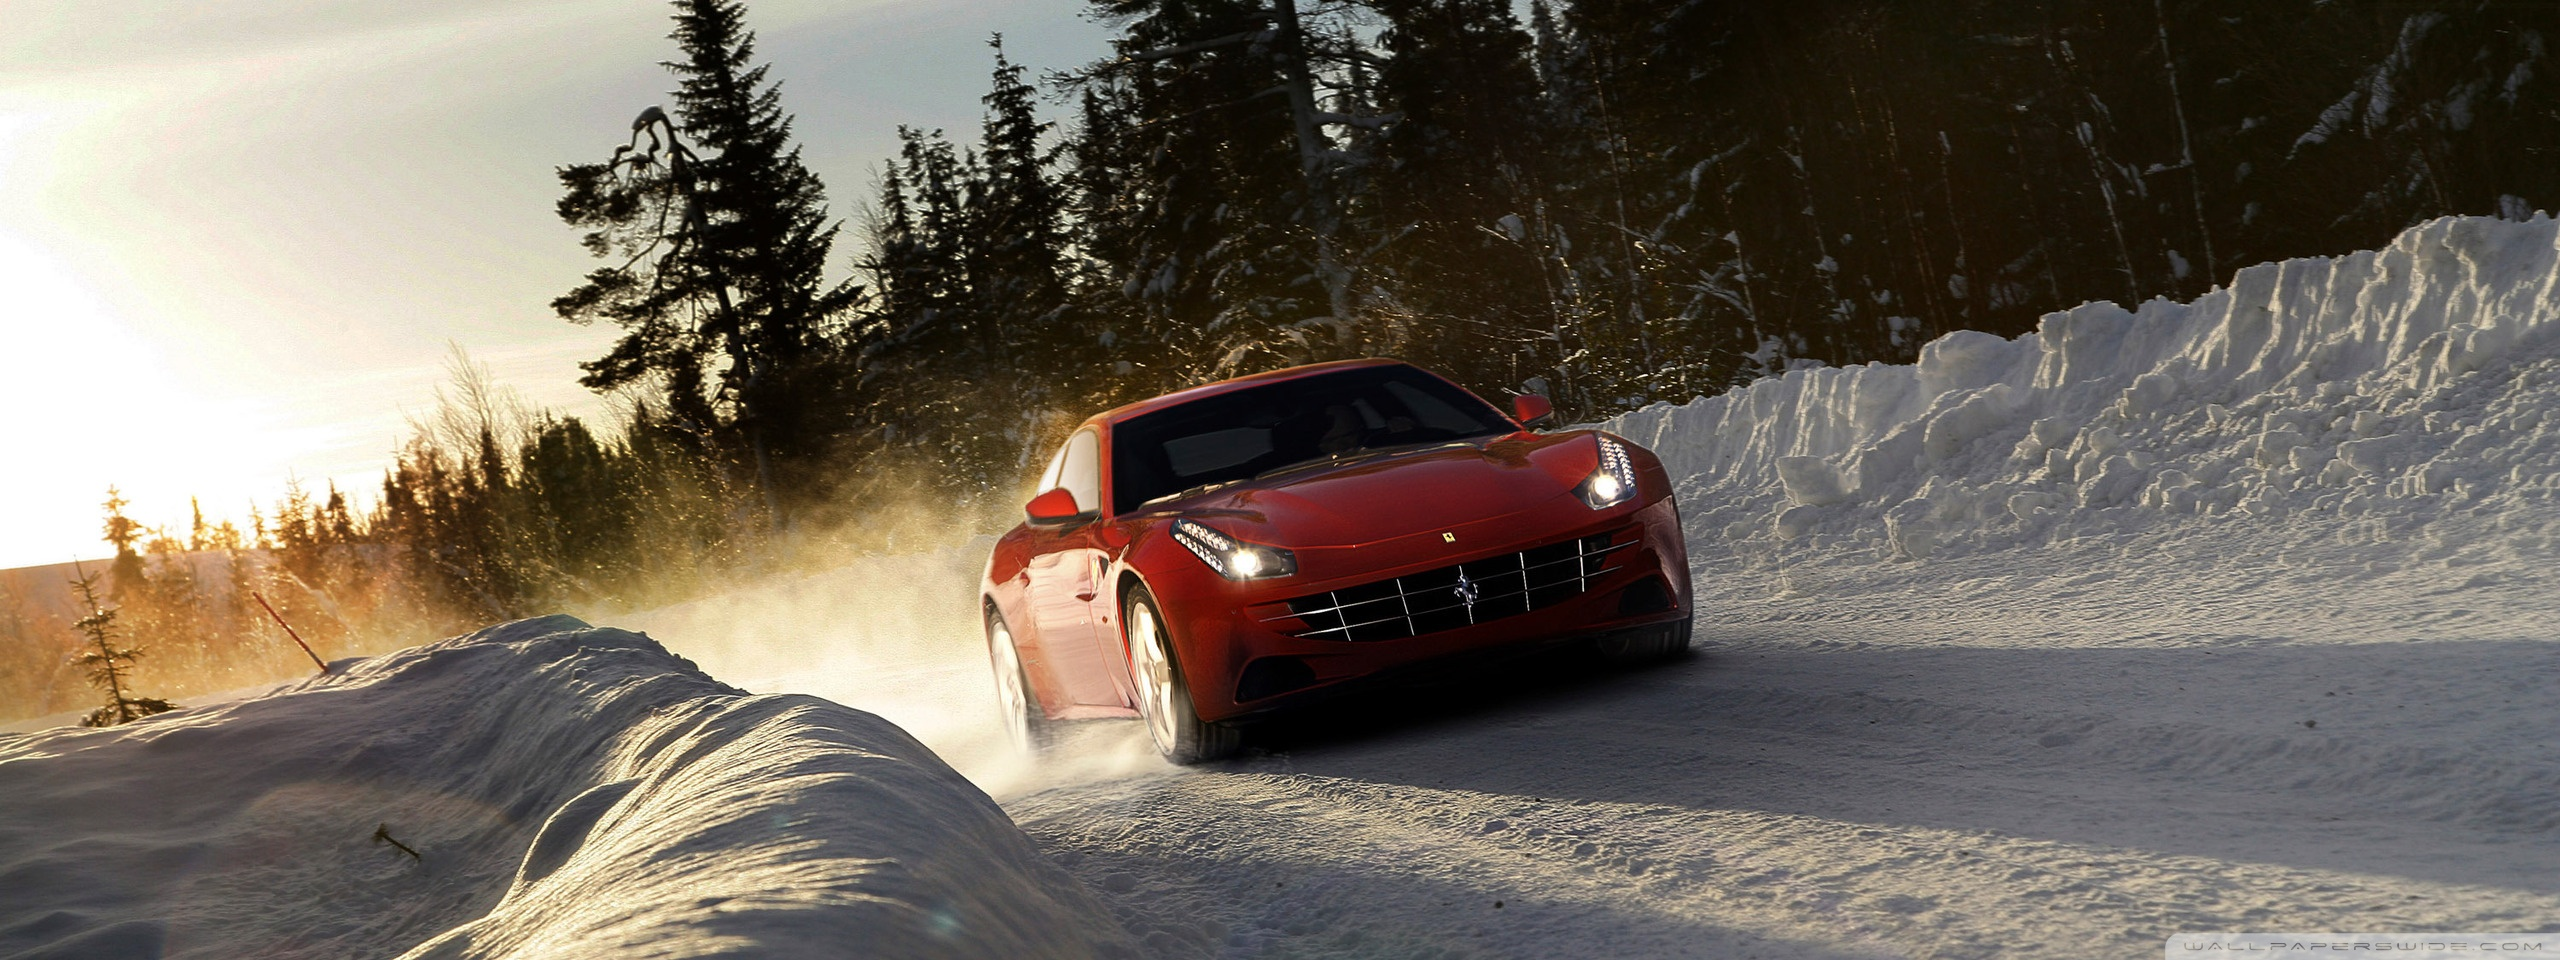 2560x960 - Ferrari FF Wallpapers 6